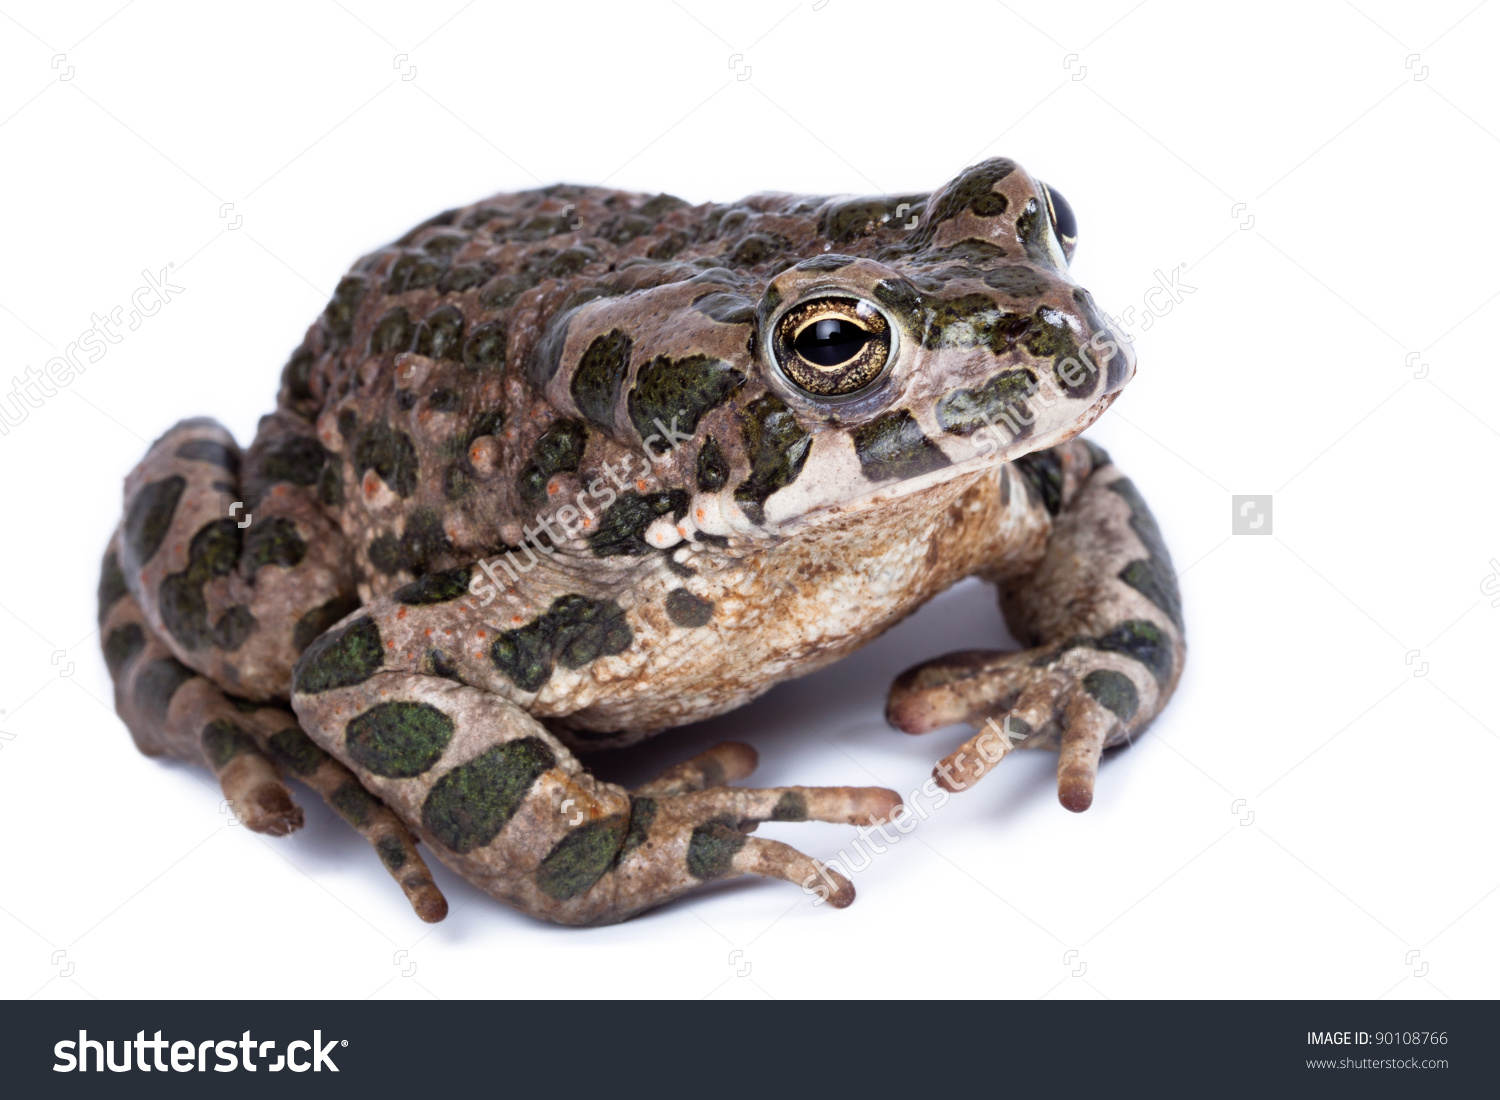 Bufo Viridis, European Green Toad.Toad In Studio Against A White.